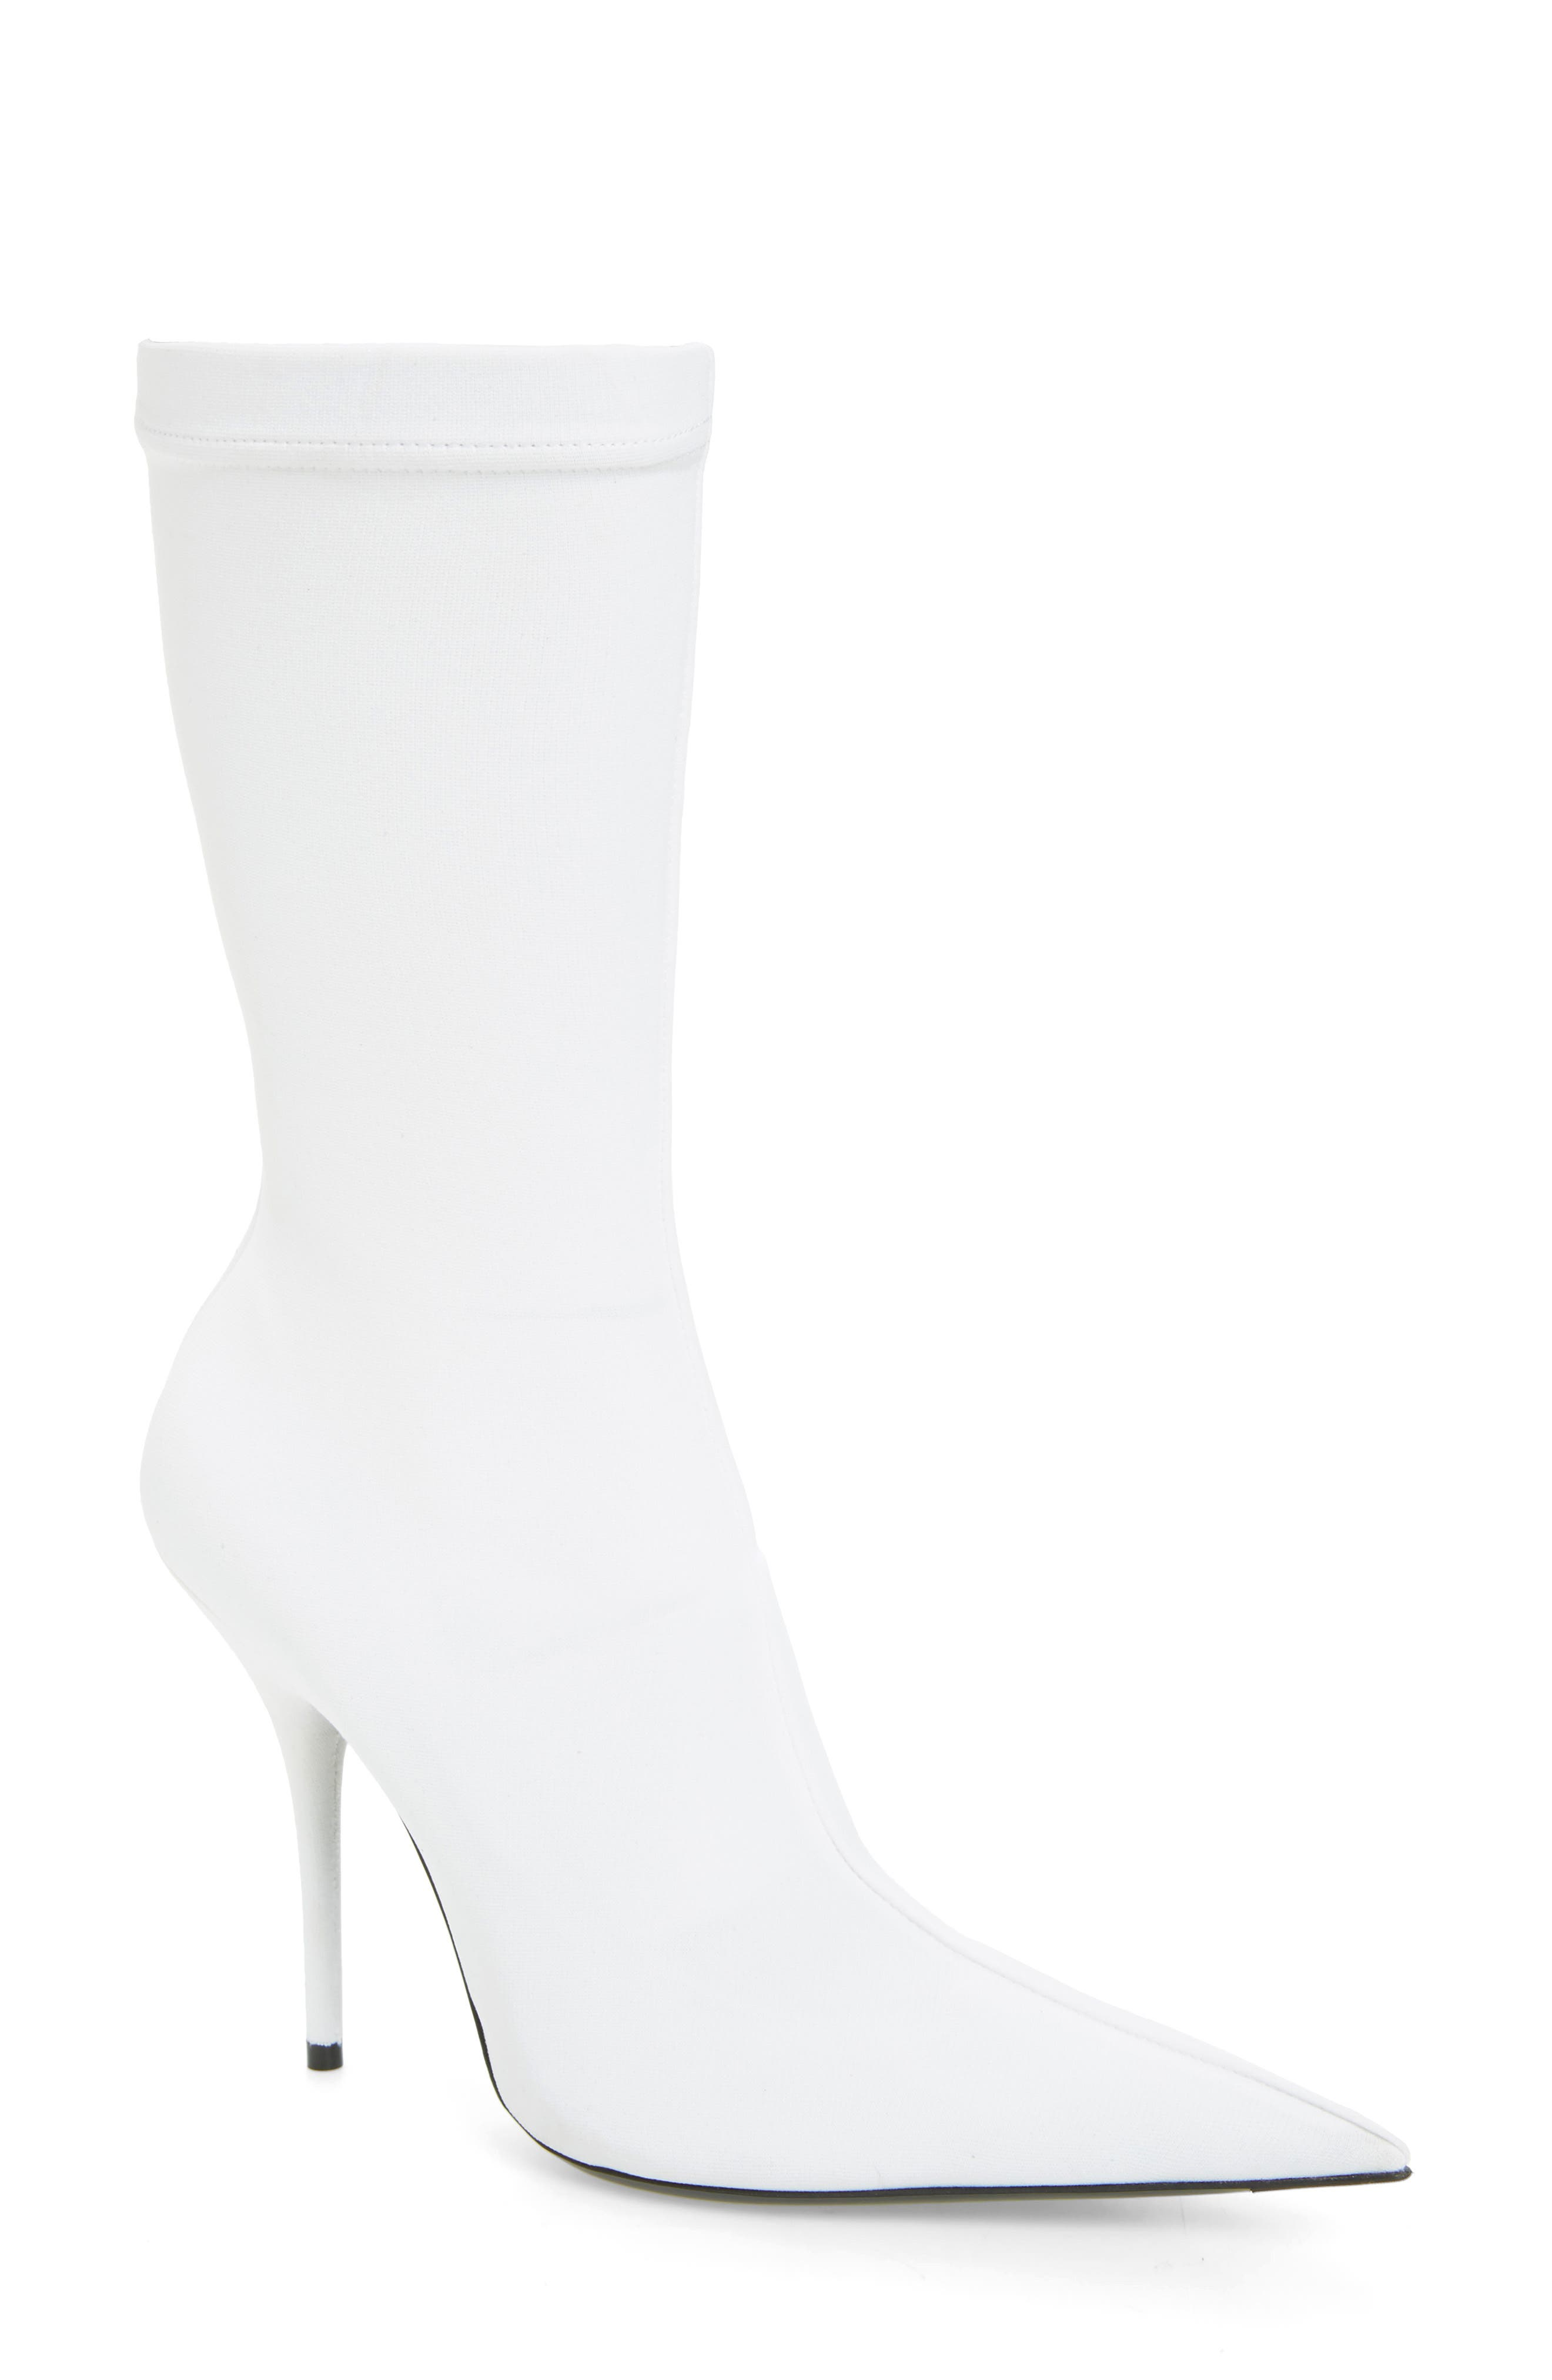 Main Image - Balenciaga Pointy Toe Mid Boot (Women)